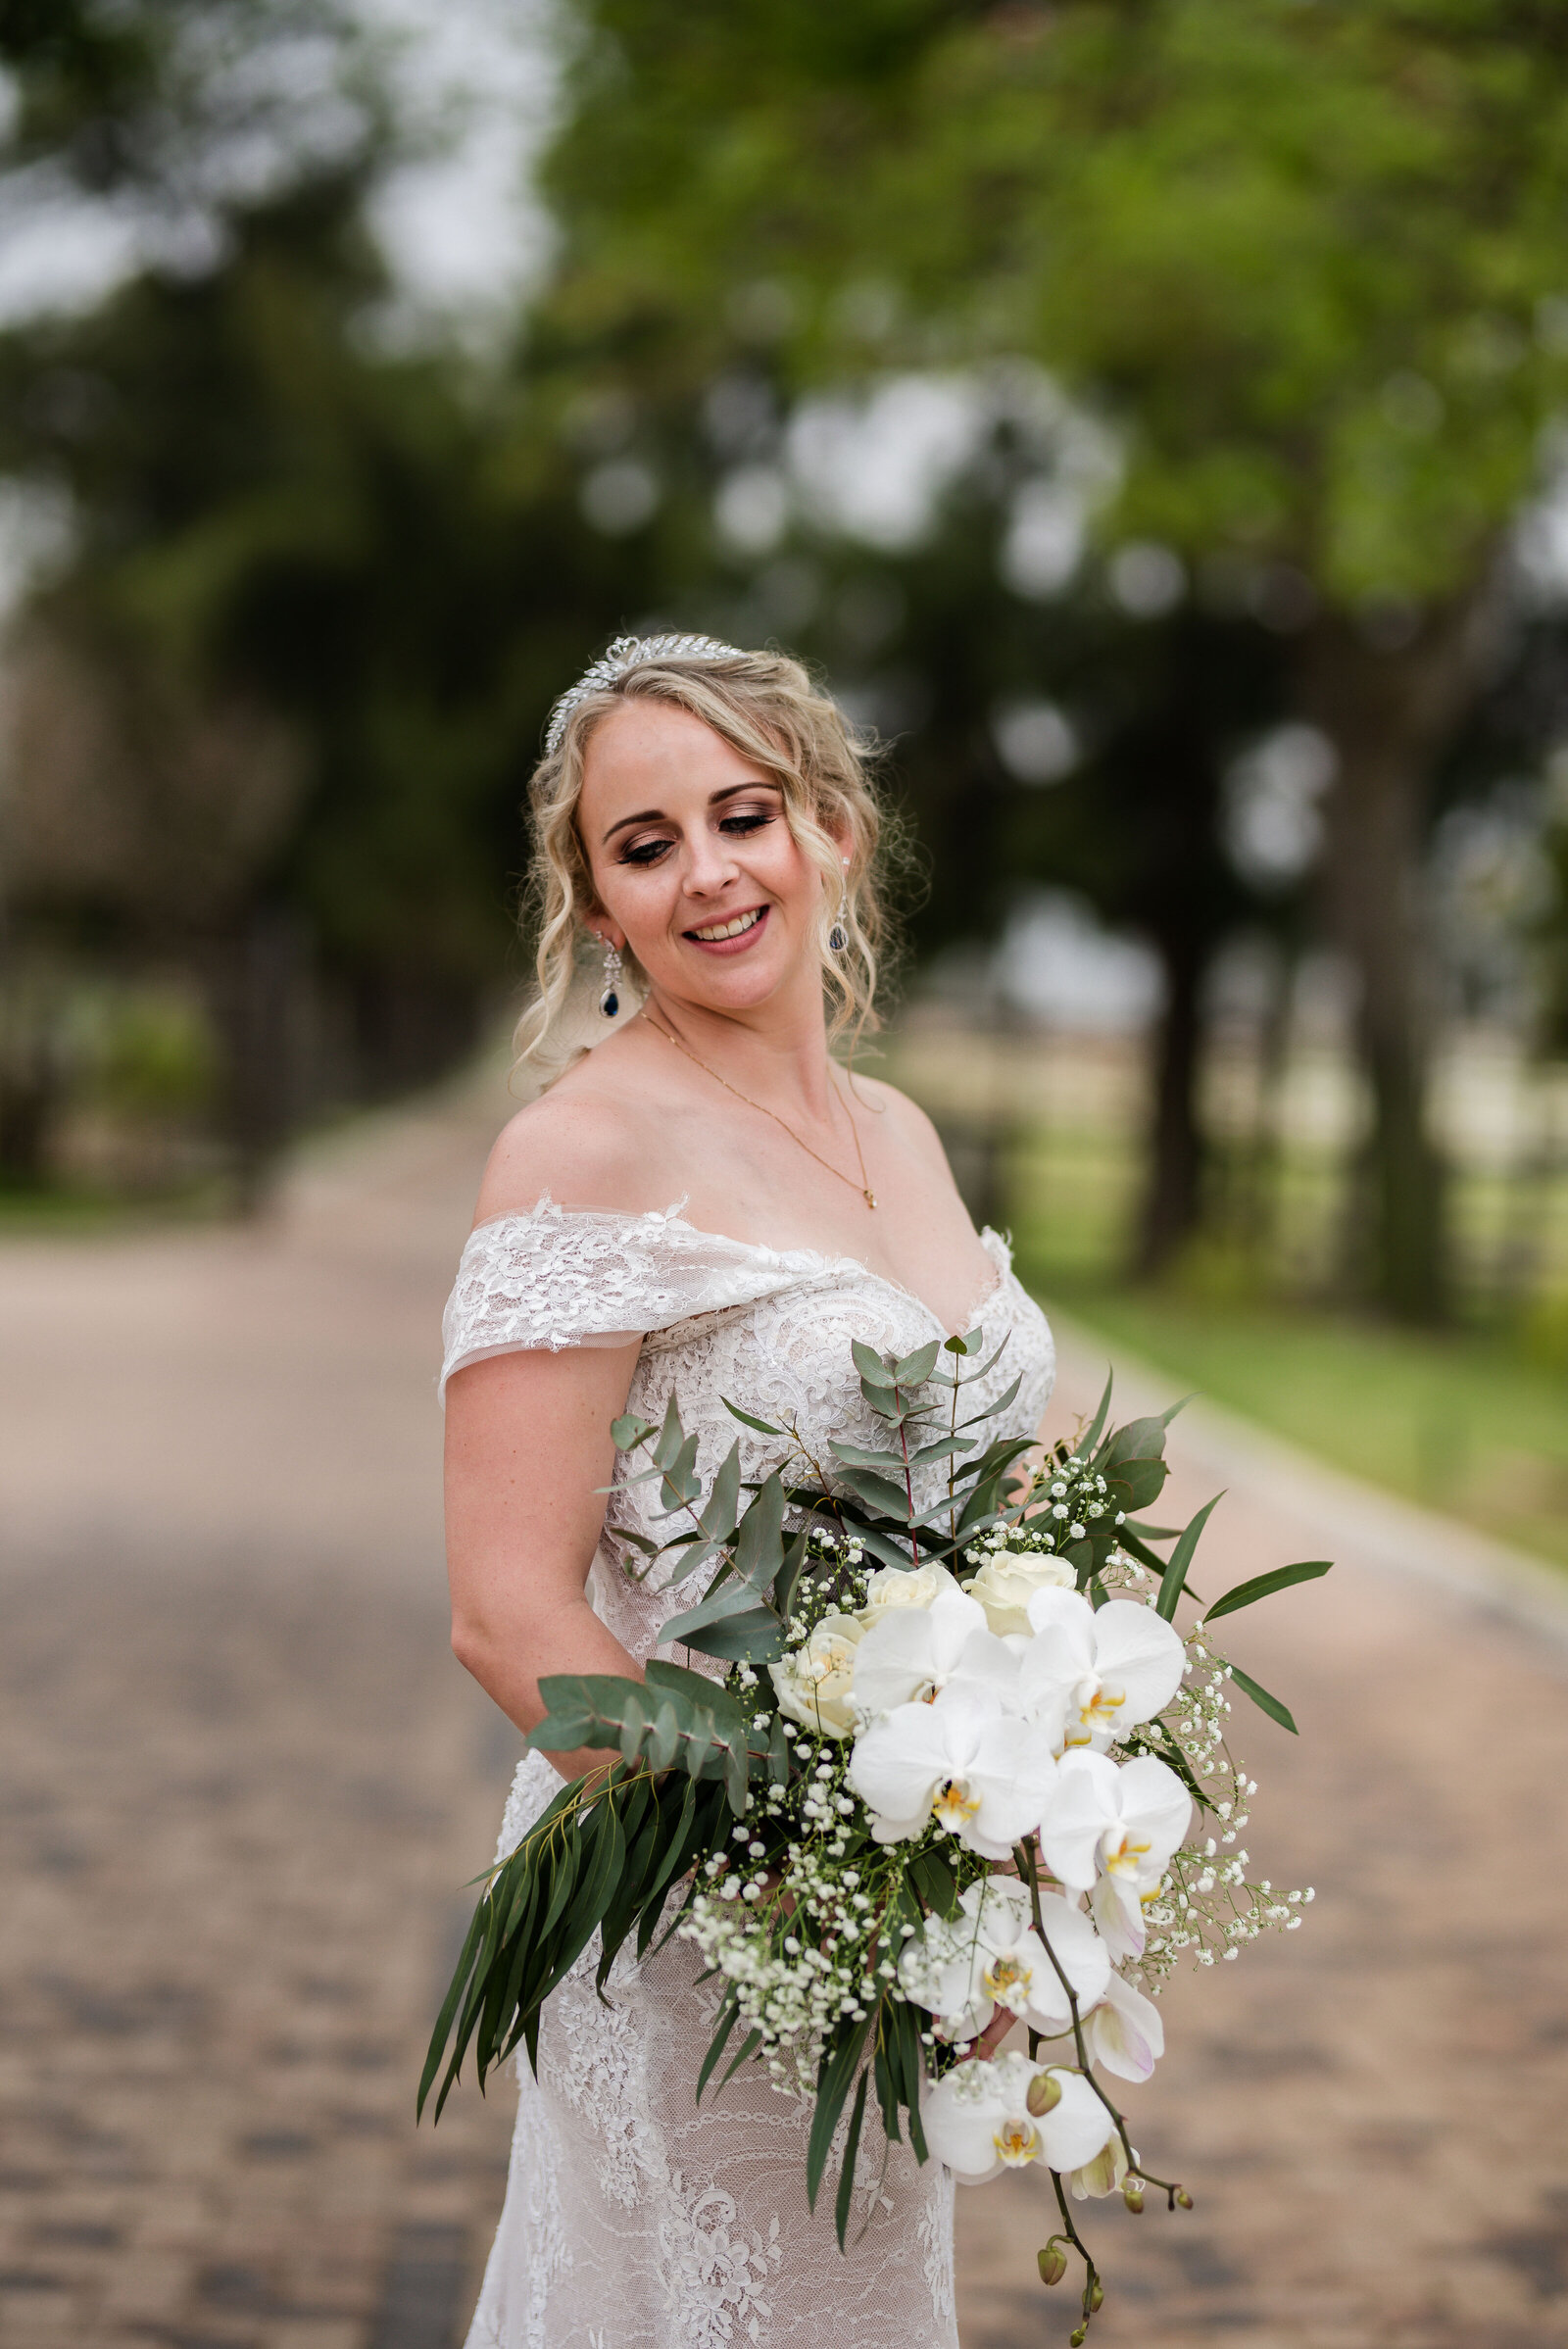 Wedding Photographer + Cape Town venue +Elri Photography+ Weddingdress (28)